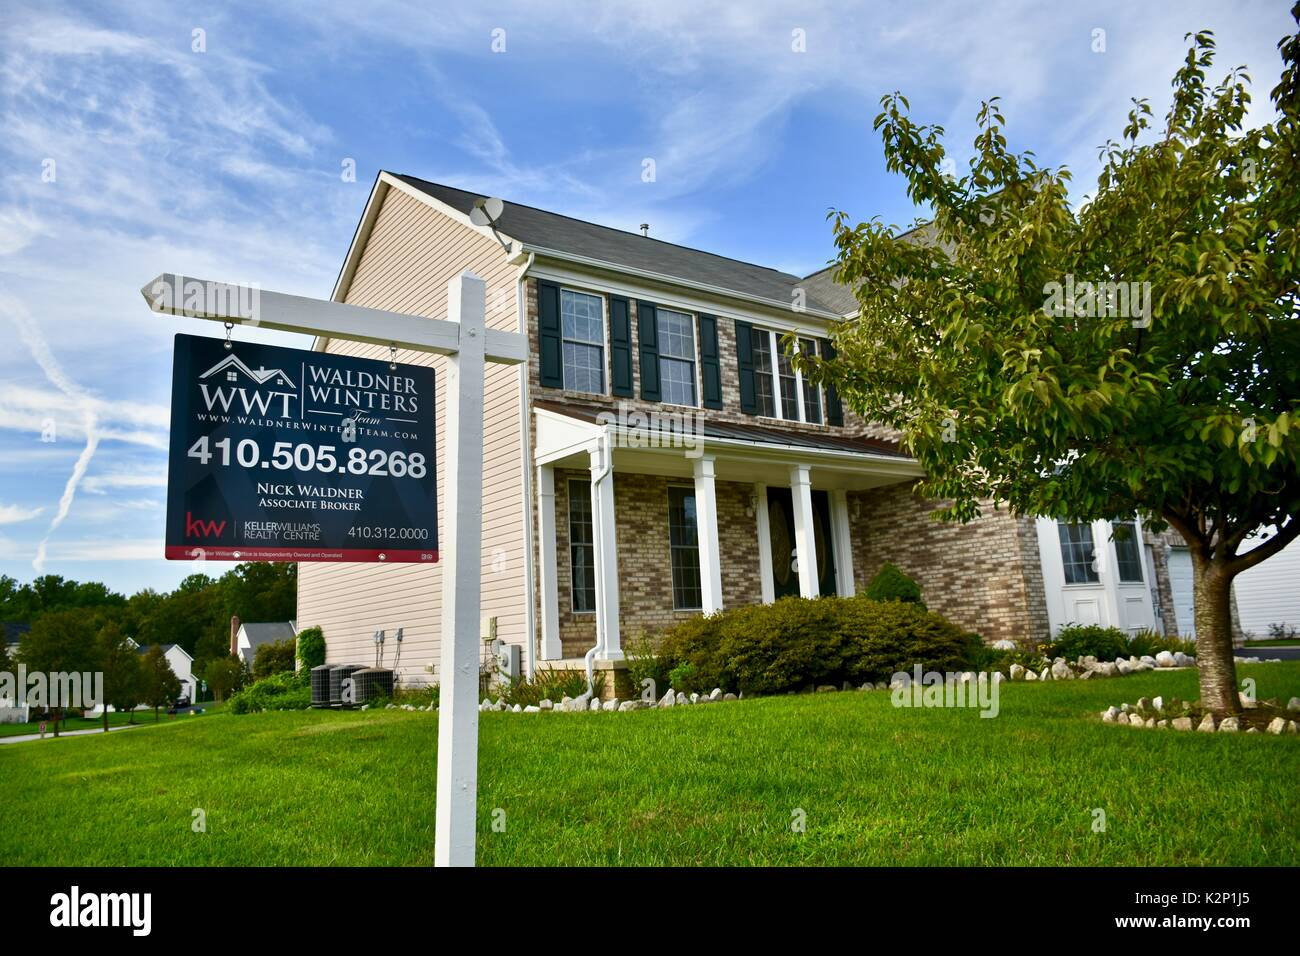 Big Beautiful Modern House For Sale Sign Stock Photos Big